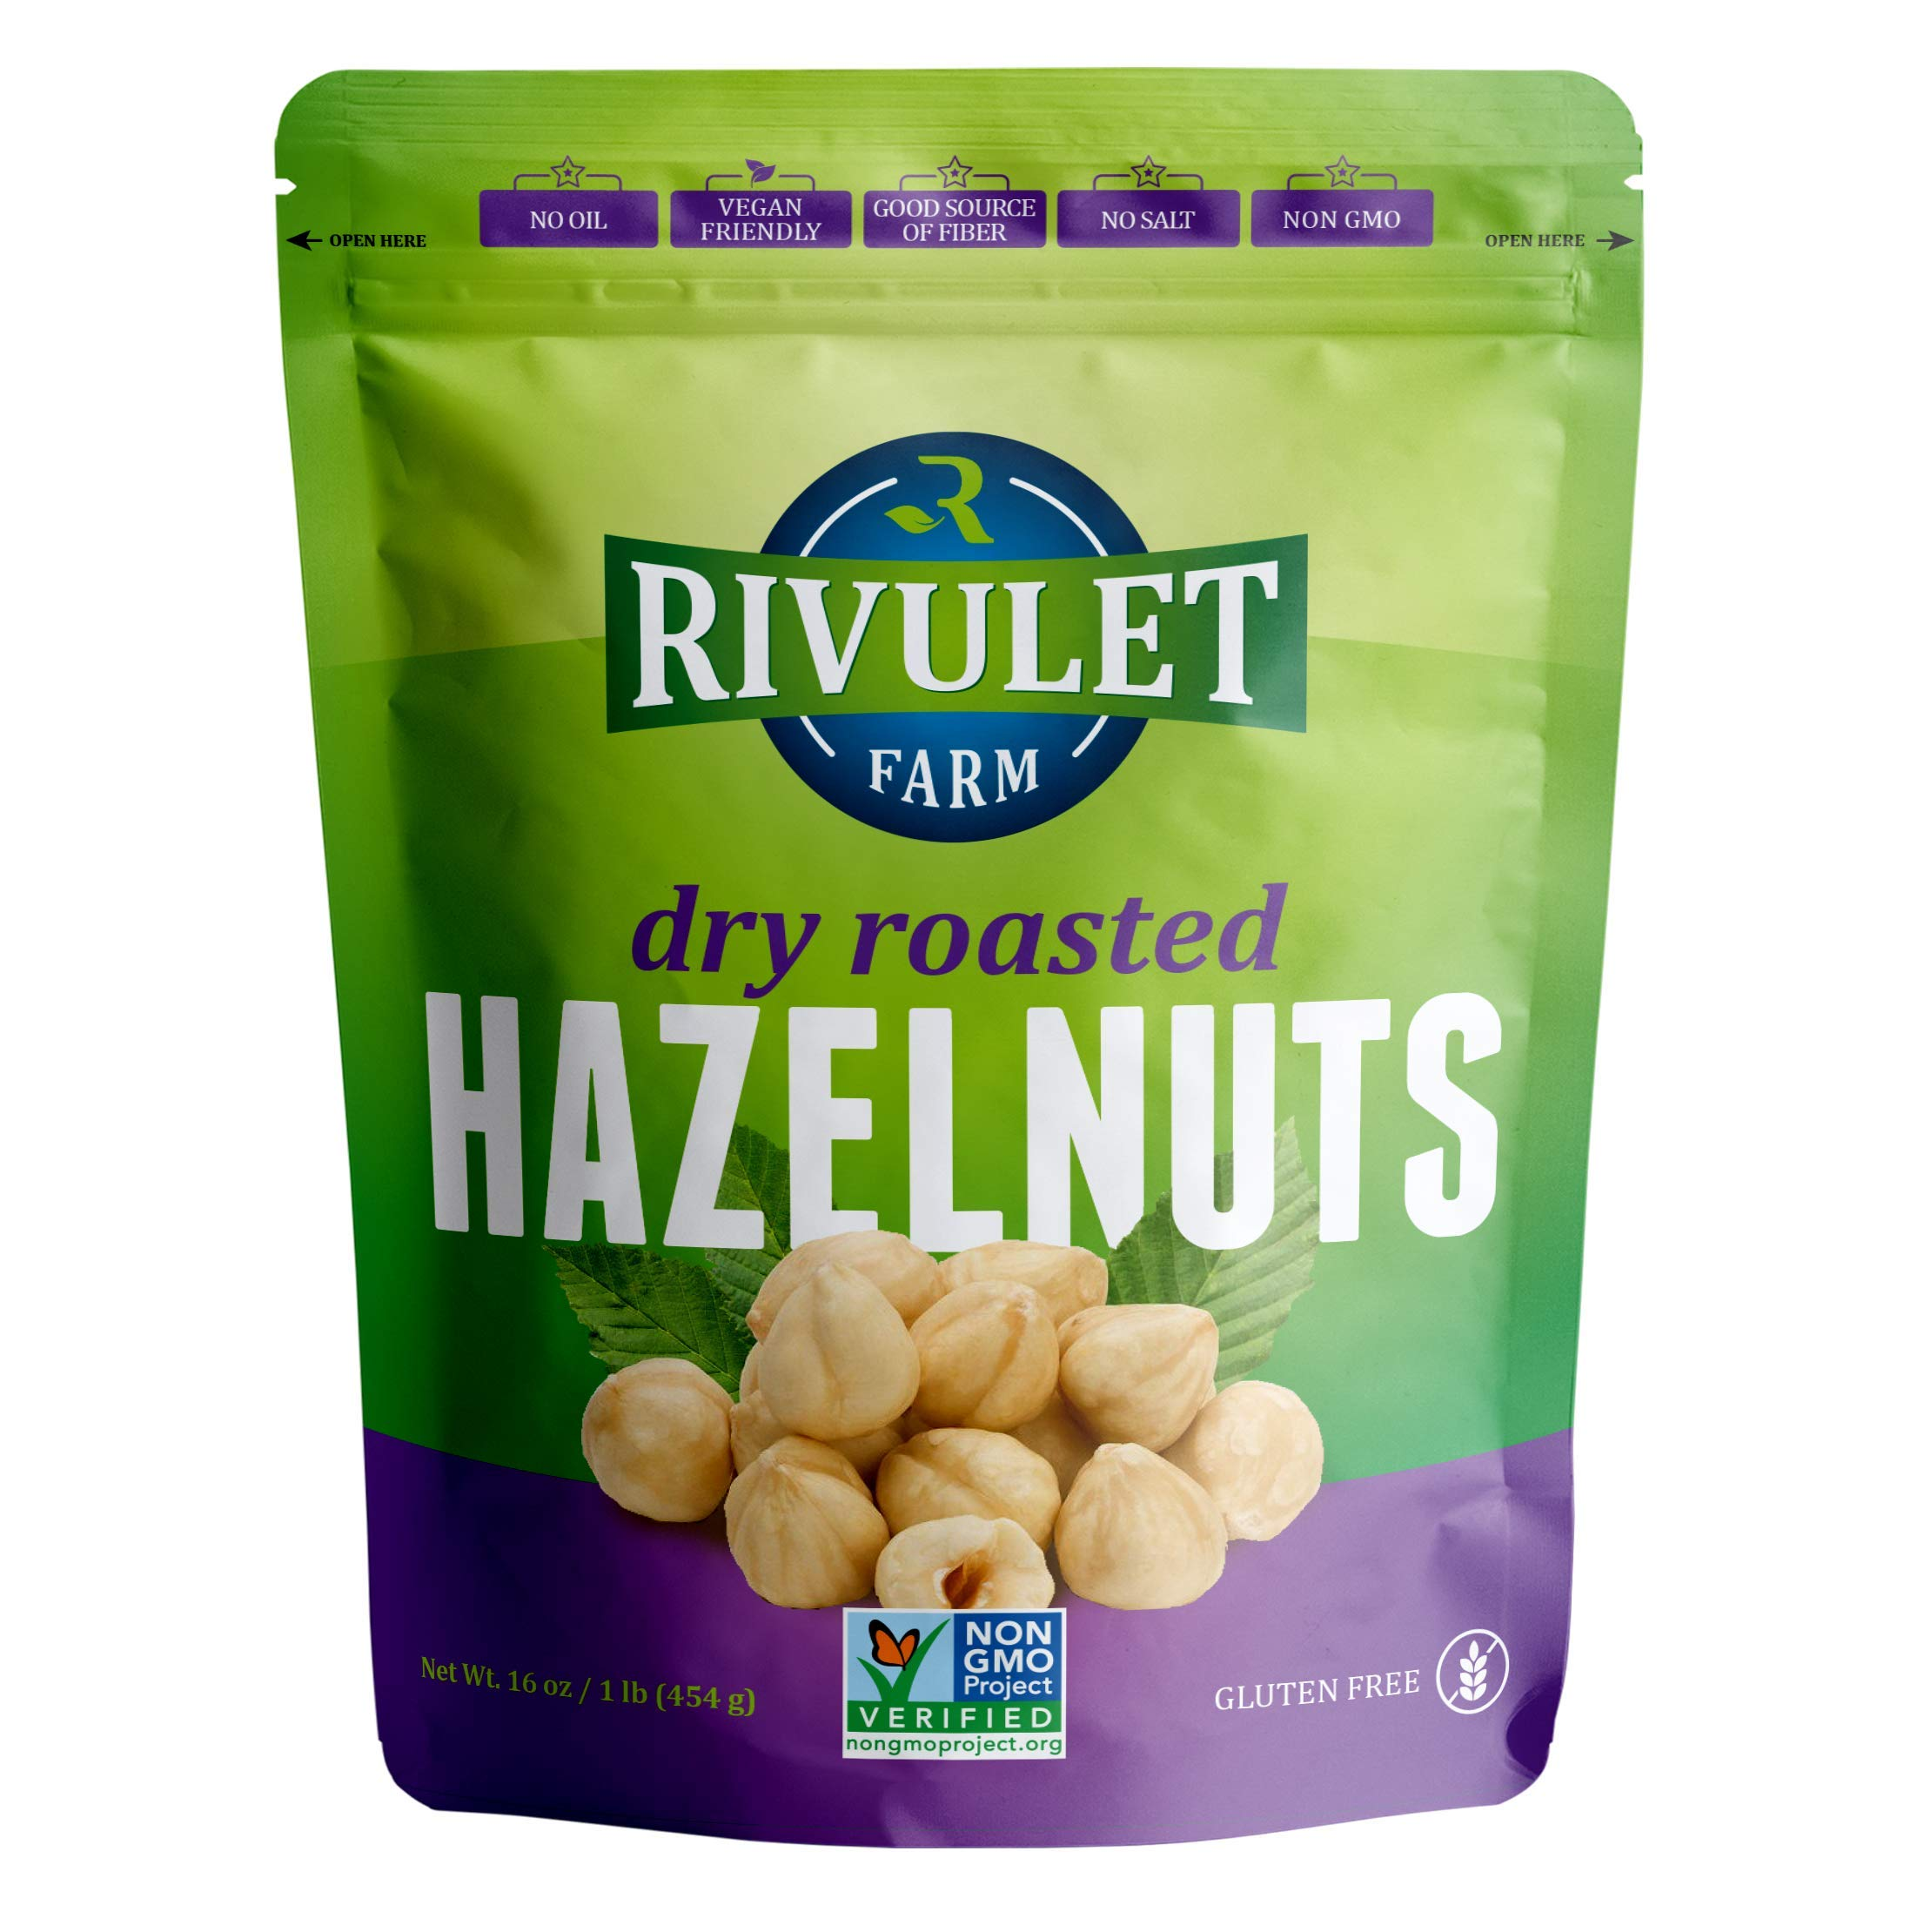 Dry Roasted Hazelnuts by Rivulet Farm - 16oz - Unsalted - Tasty & Snacks for Keto, Paleo, or Vegetarian Diet - Nutritious Non-GMO Toasted Filberts Hazel Nut Snack - Avellanas Tostadas by Rivulet Farm